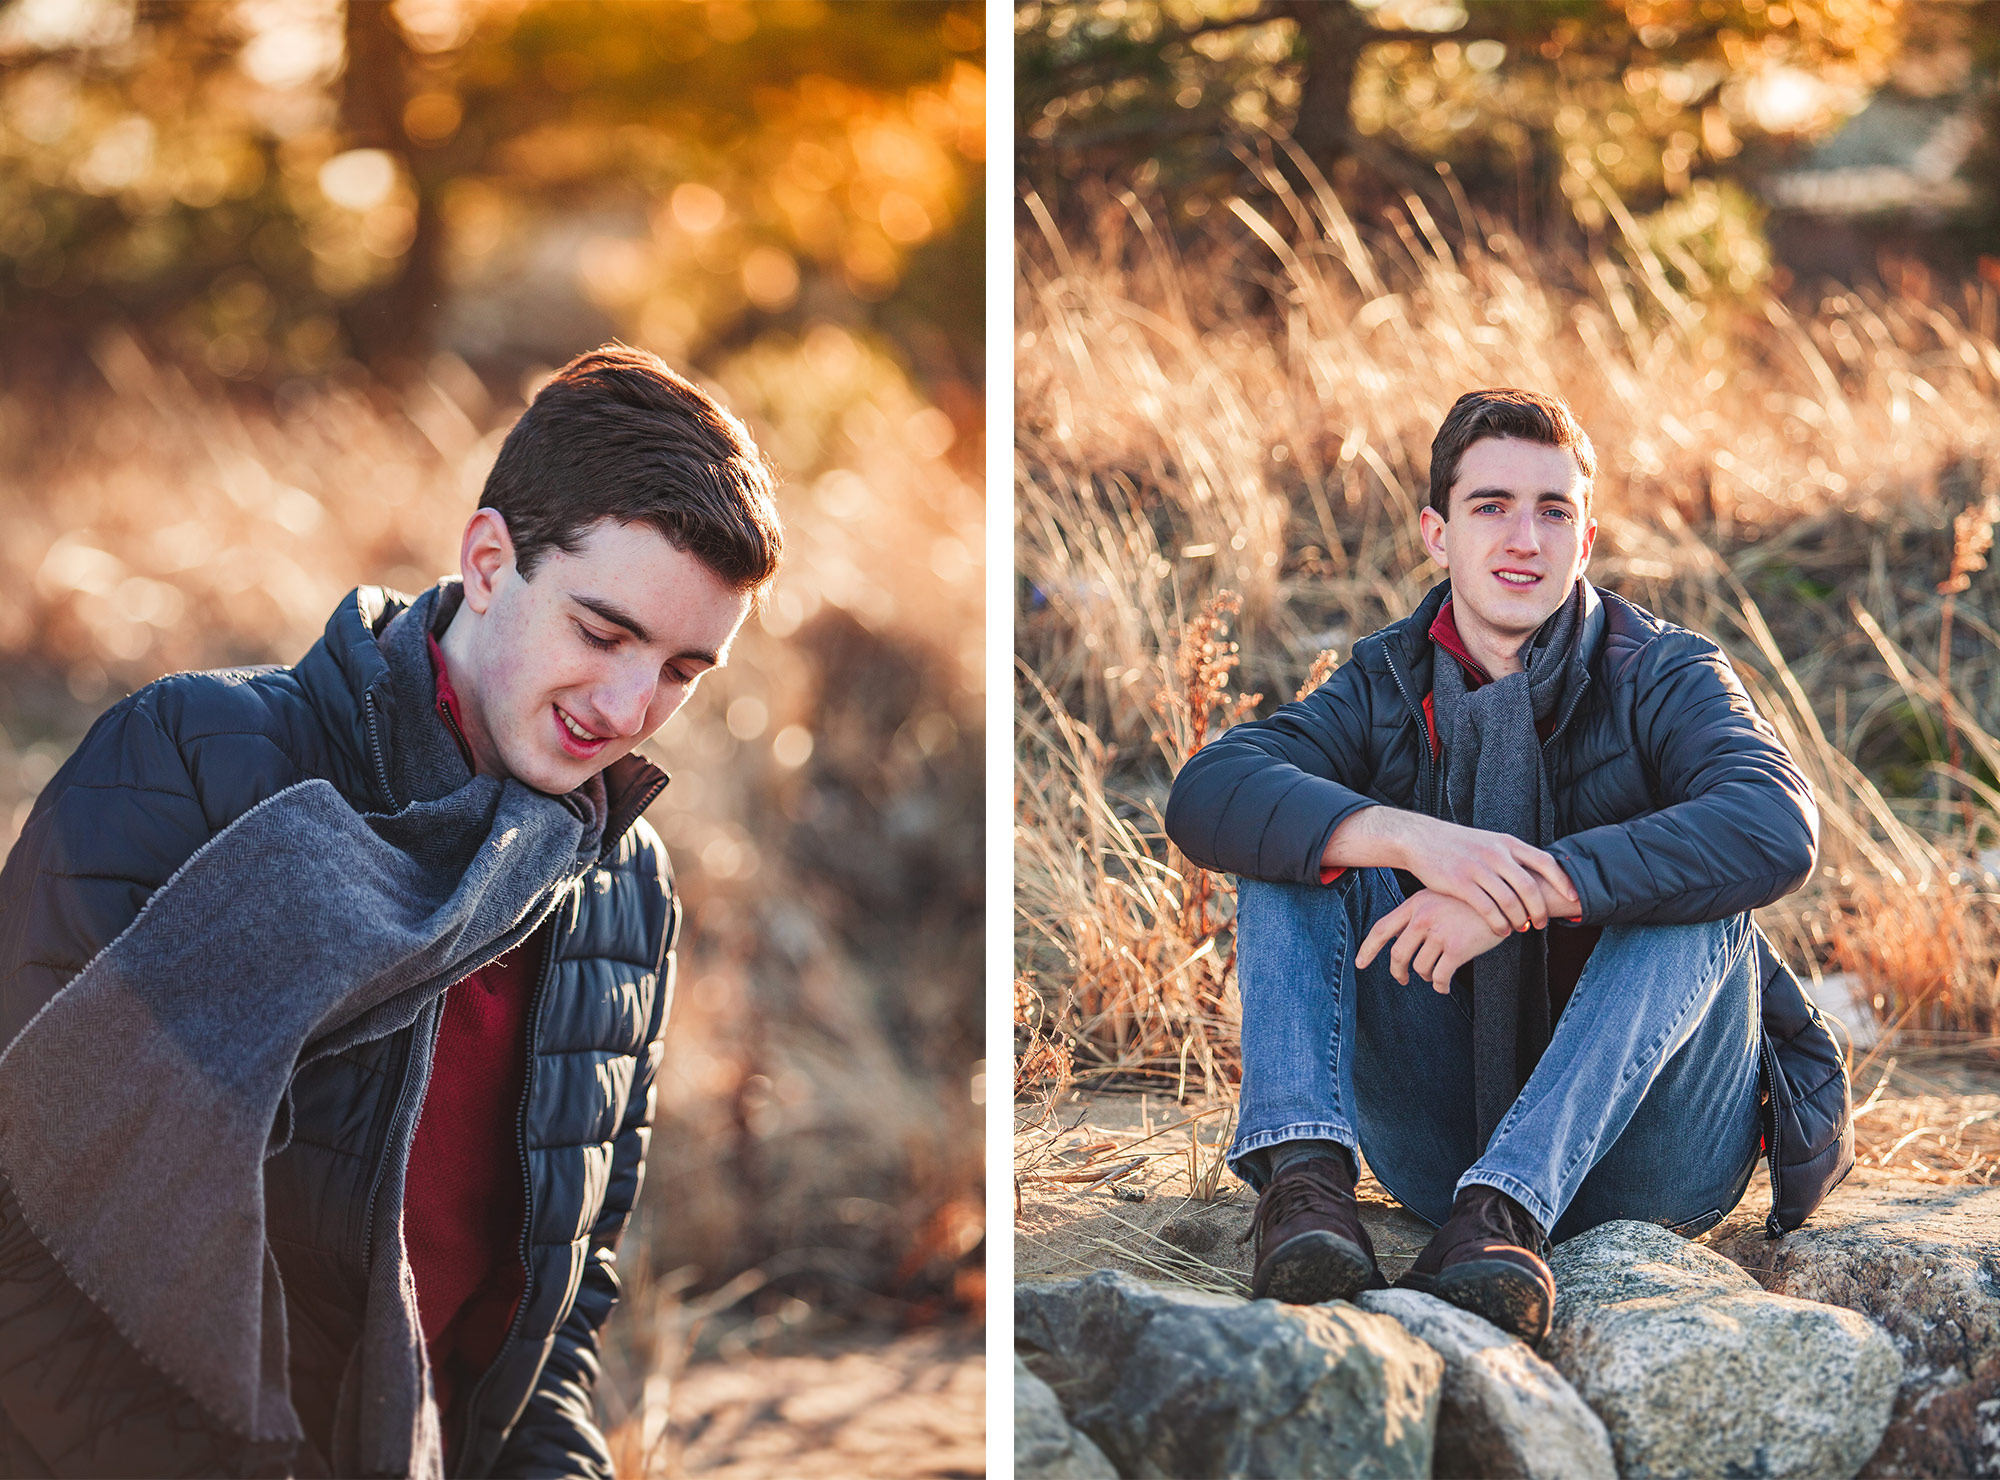 Newburyport Senior Portrait Photographer | Stephen Grant Photography